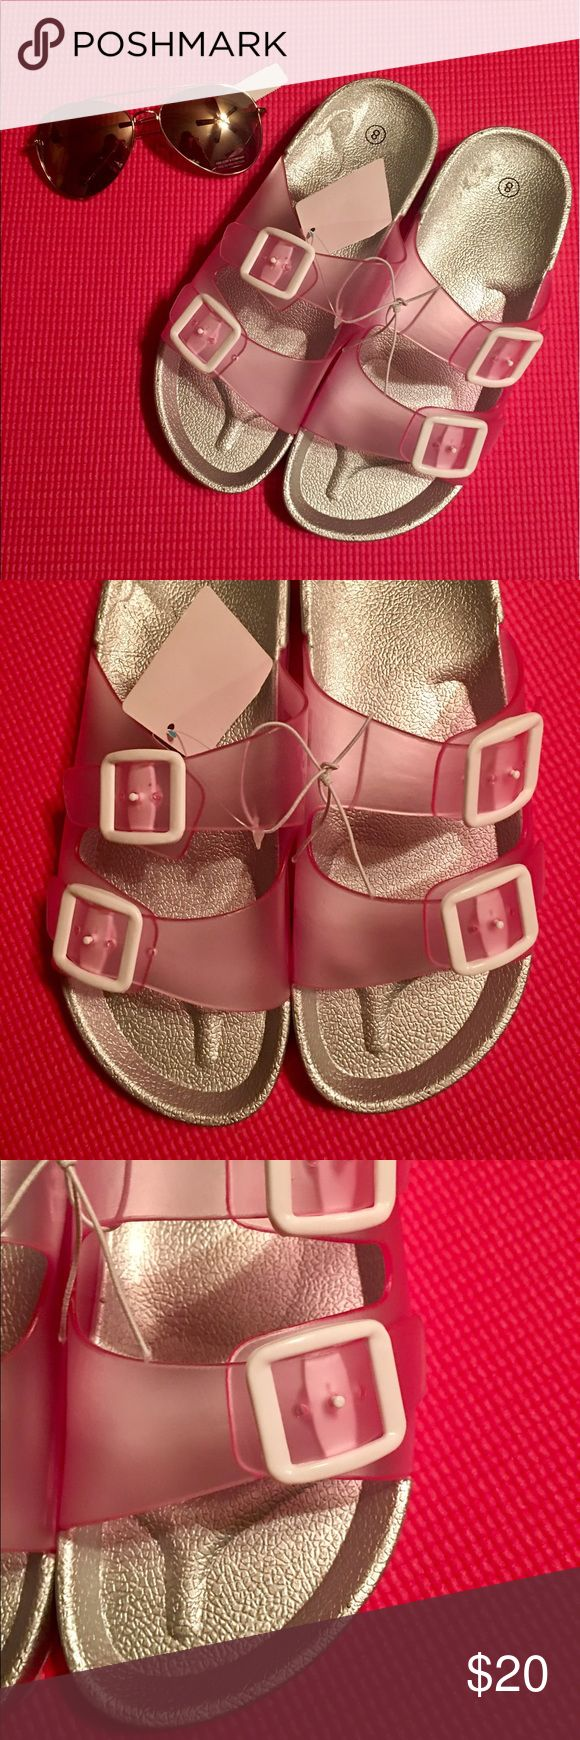 🆕Modern Silver Birkenstock Look Sandal-Pink Jelly So cute! Unique. Made for comfort but still makes a fashion statement. Boutique piece, set at an affordable, firm price. They are ever more Chic in person. Make them yours! 🌸 Shoes Sandals